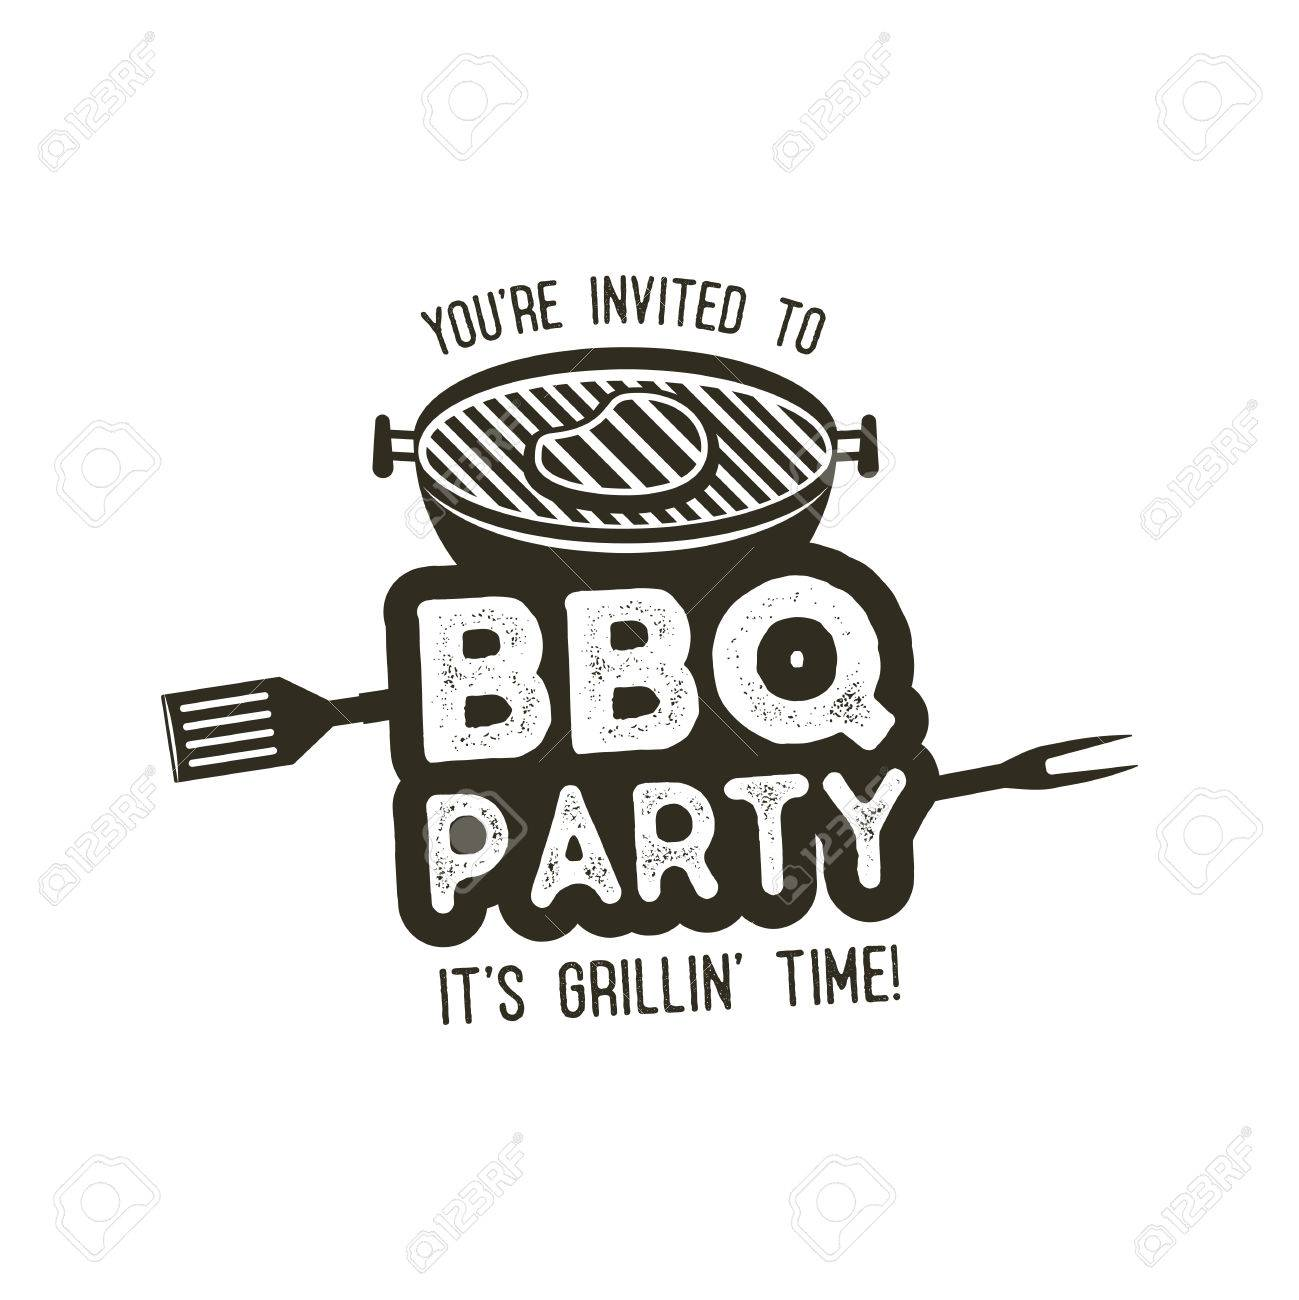 Summer BBQ Party and Garden Games banner image